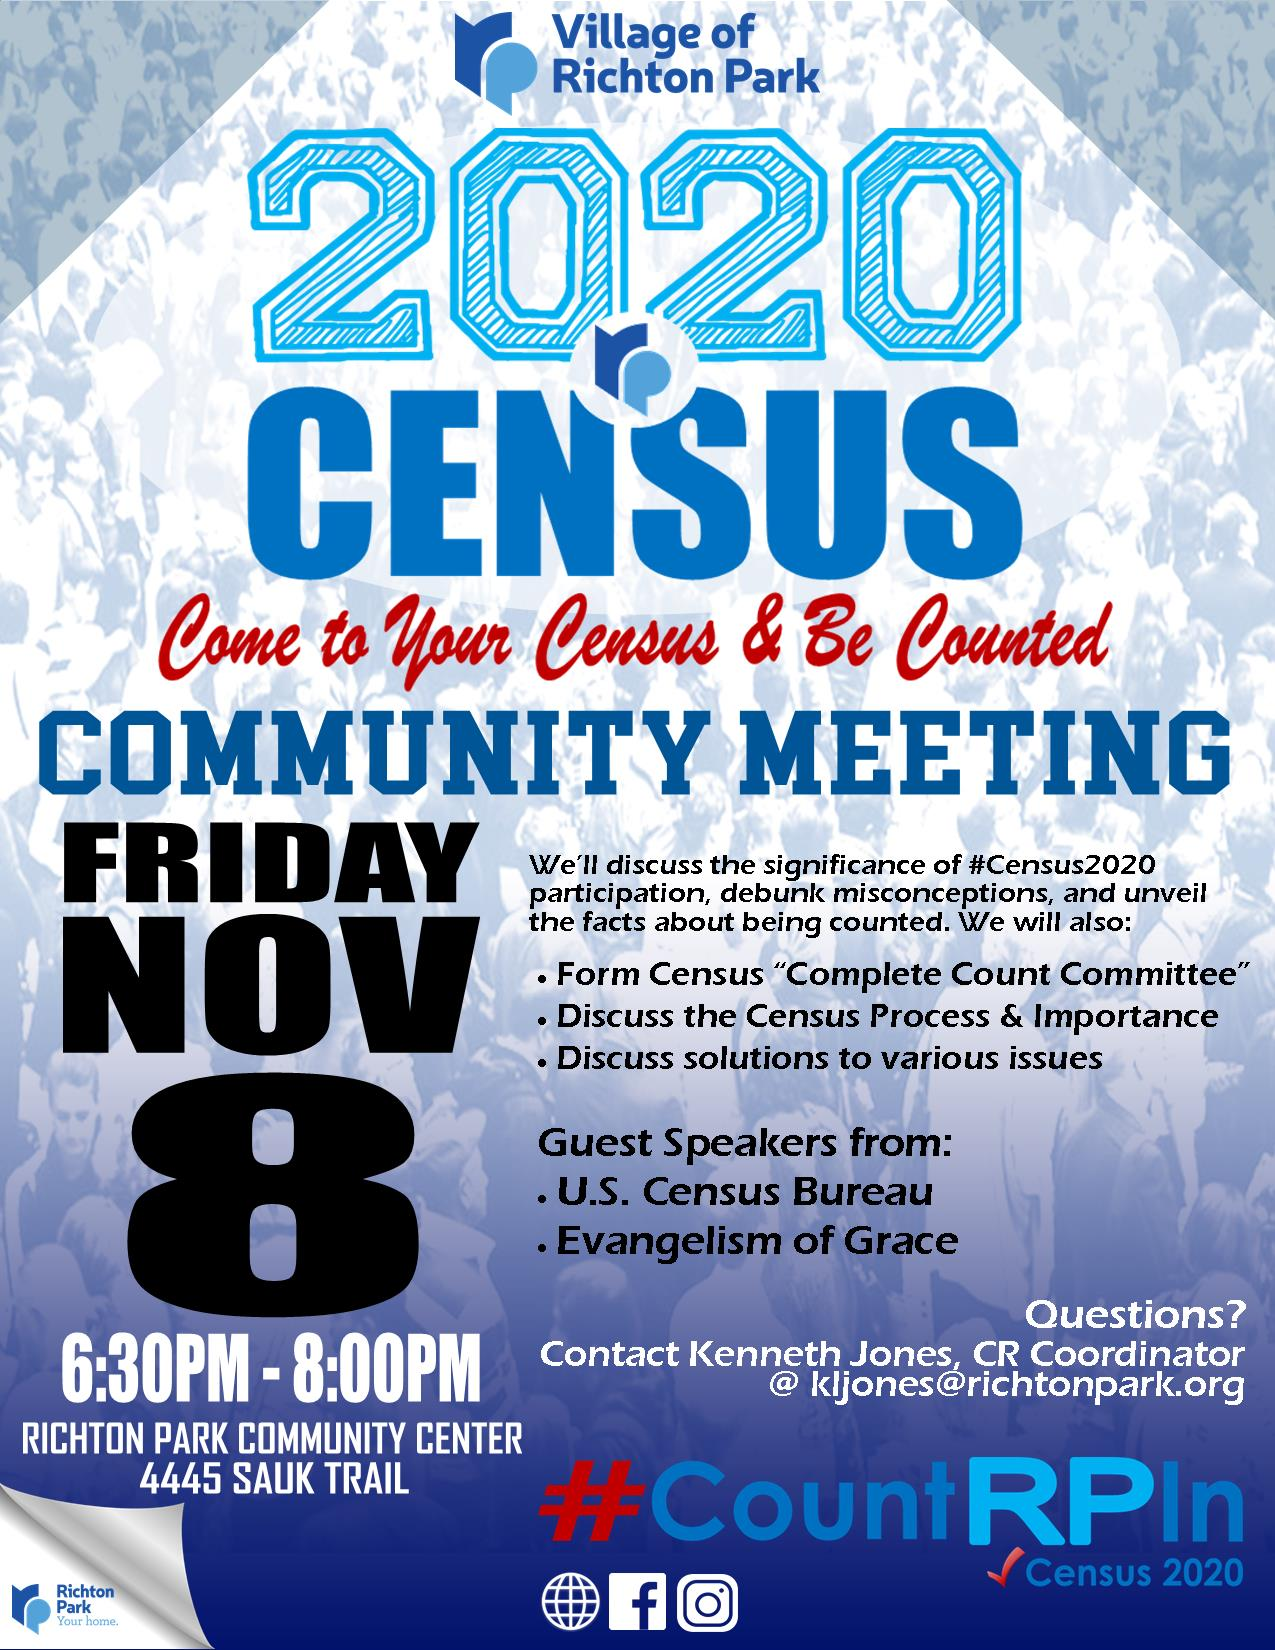 Census2020 Nov.2019 Event